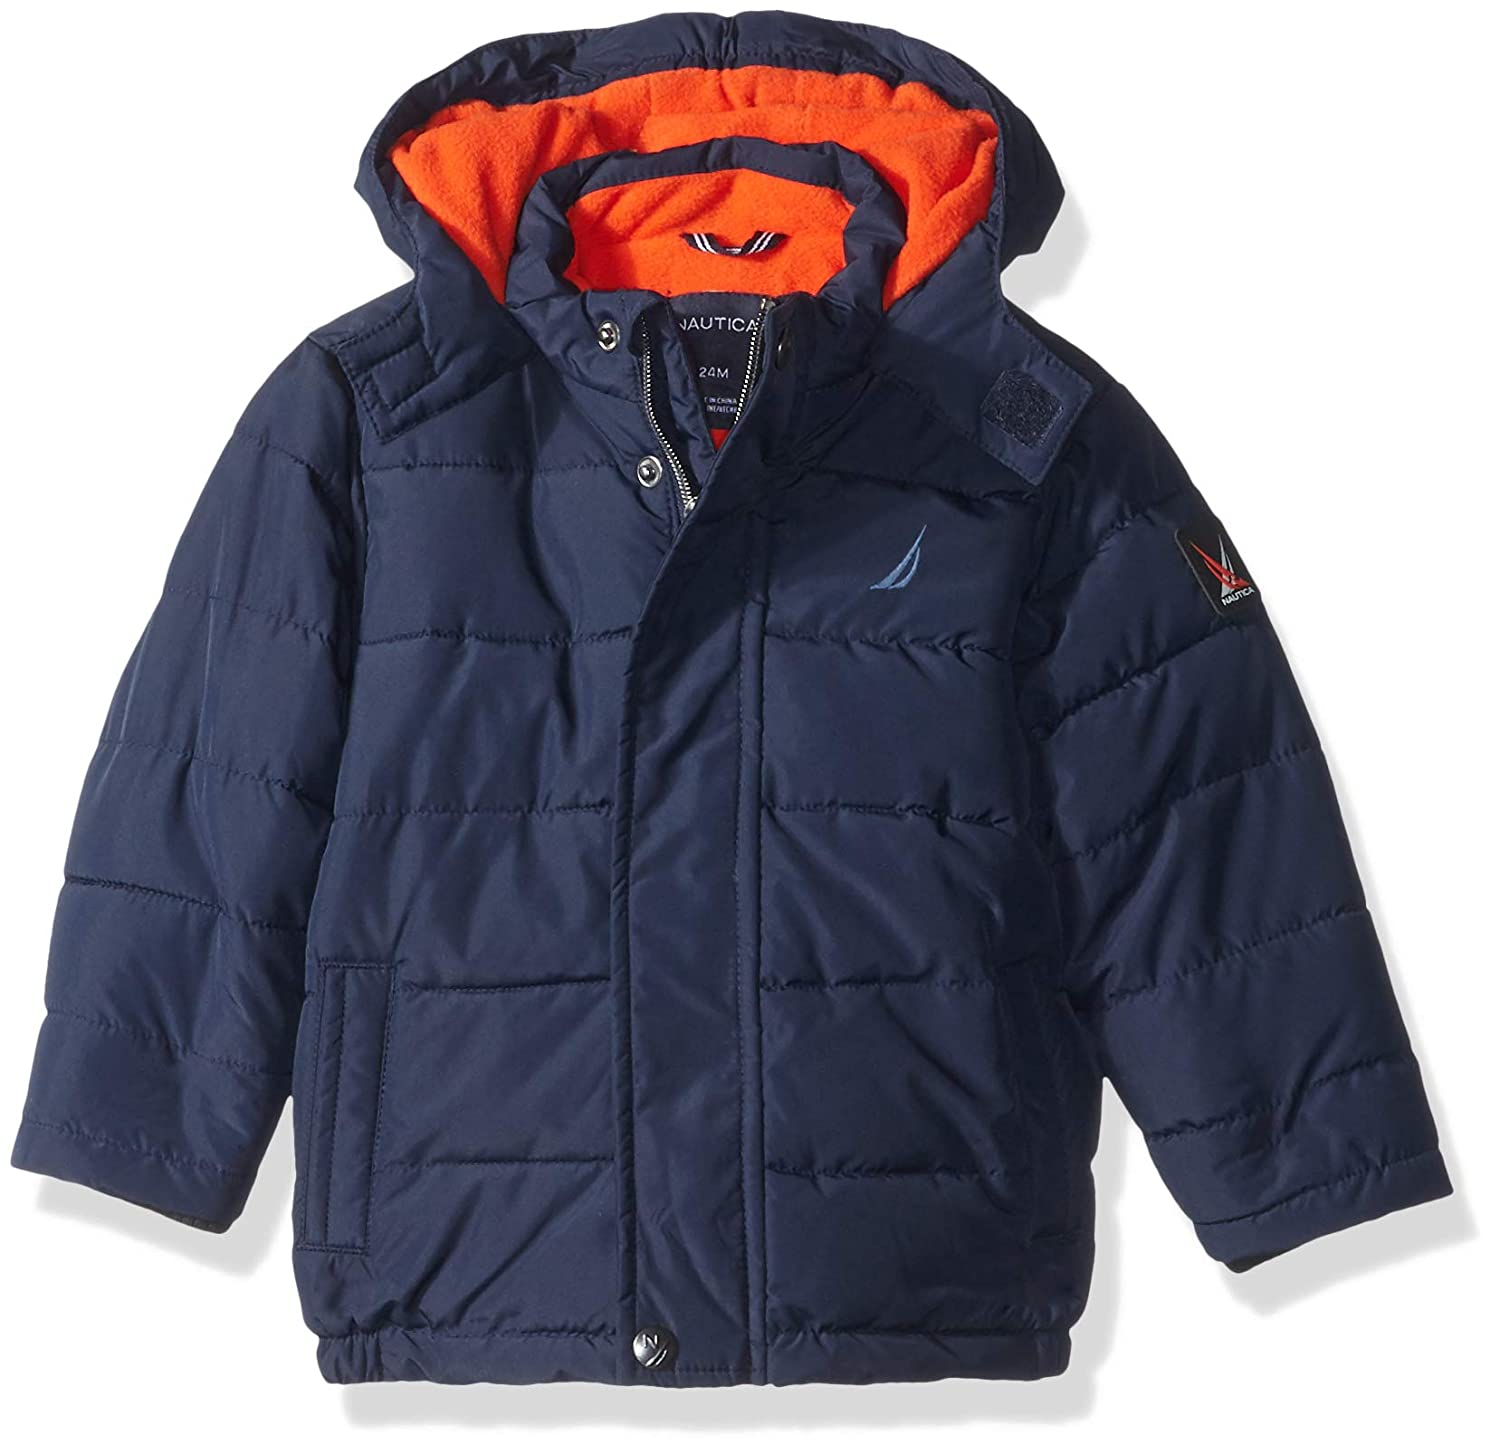 Nautica Baby Boys' Signature Puffer Jacket with Storm Cuffs,